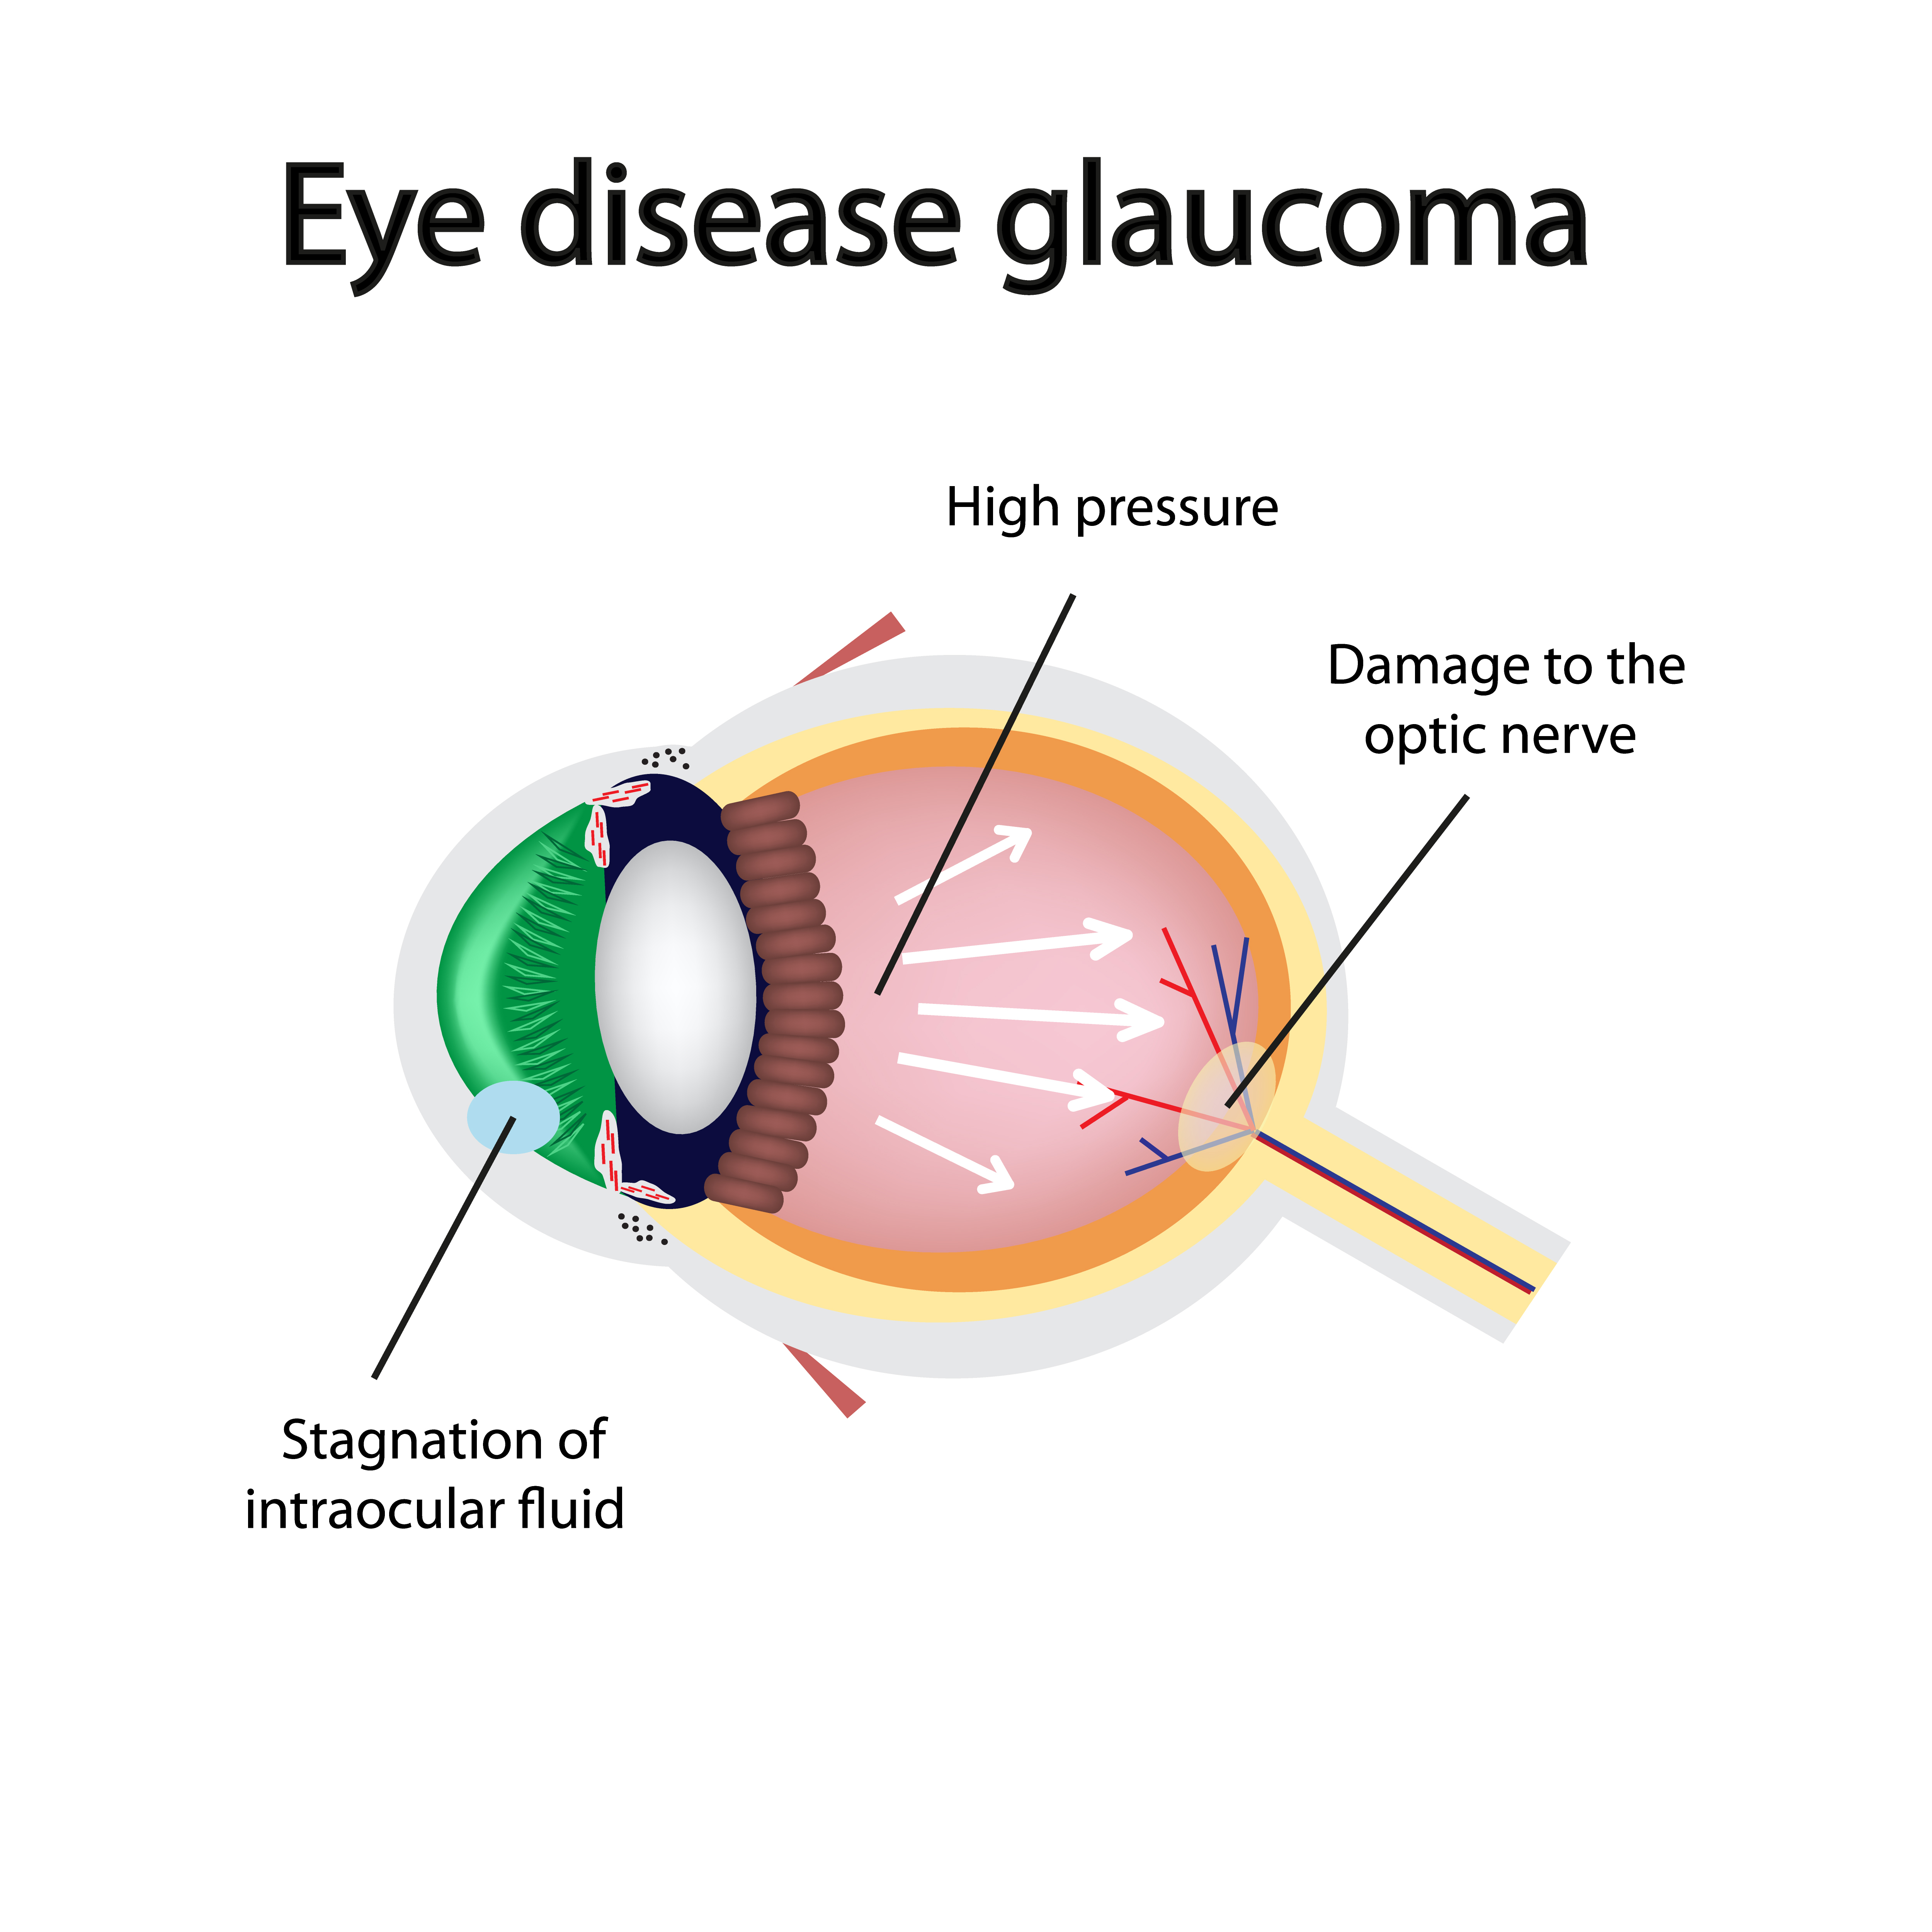 Eye disease glaucoma diagram